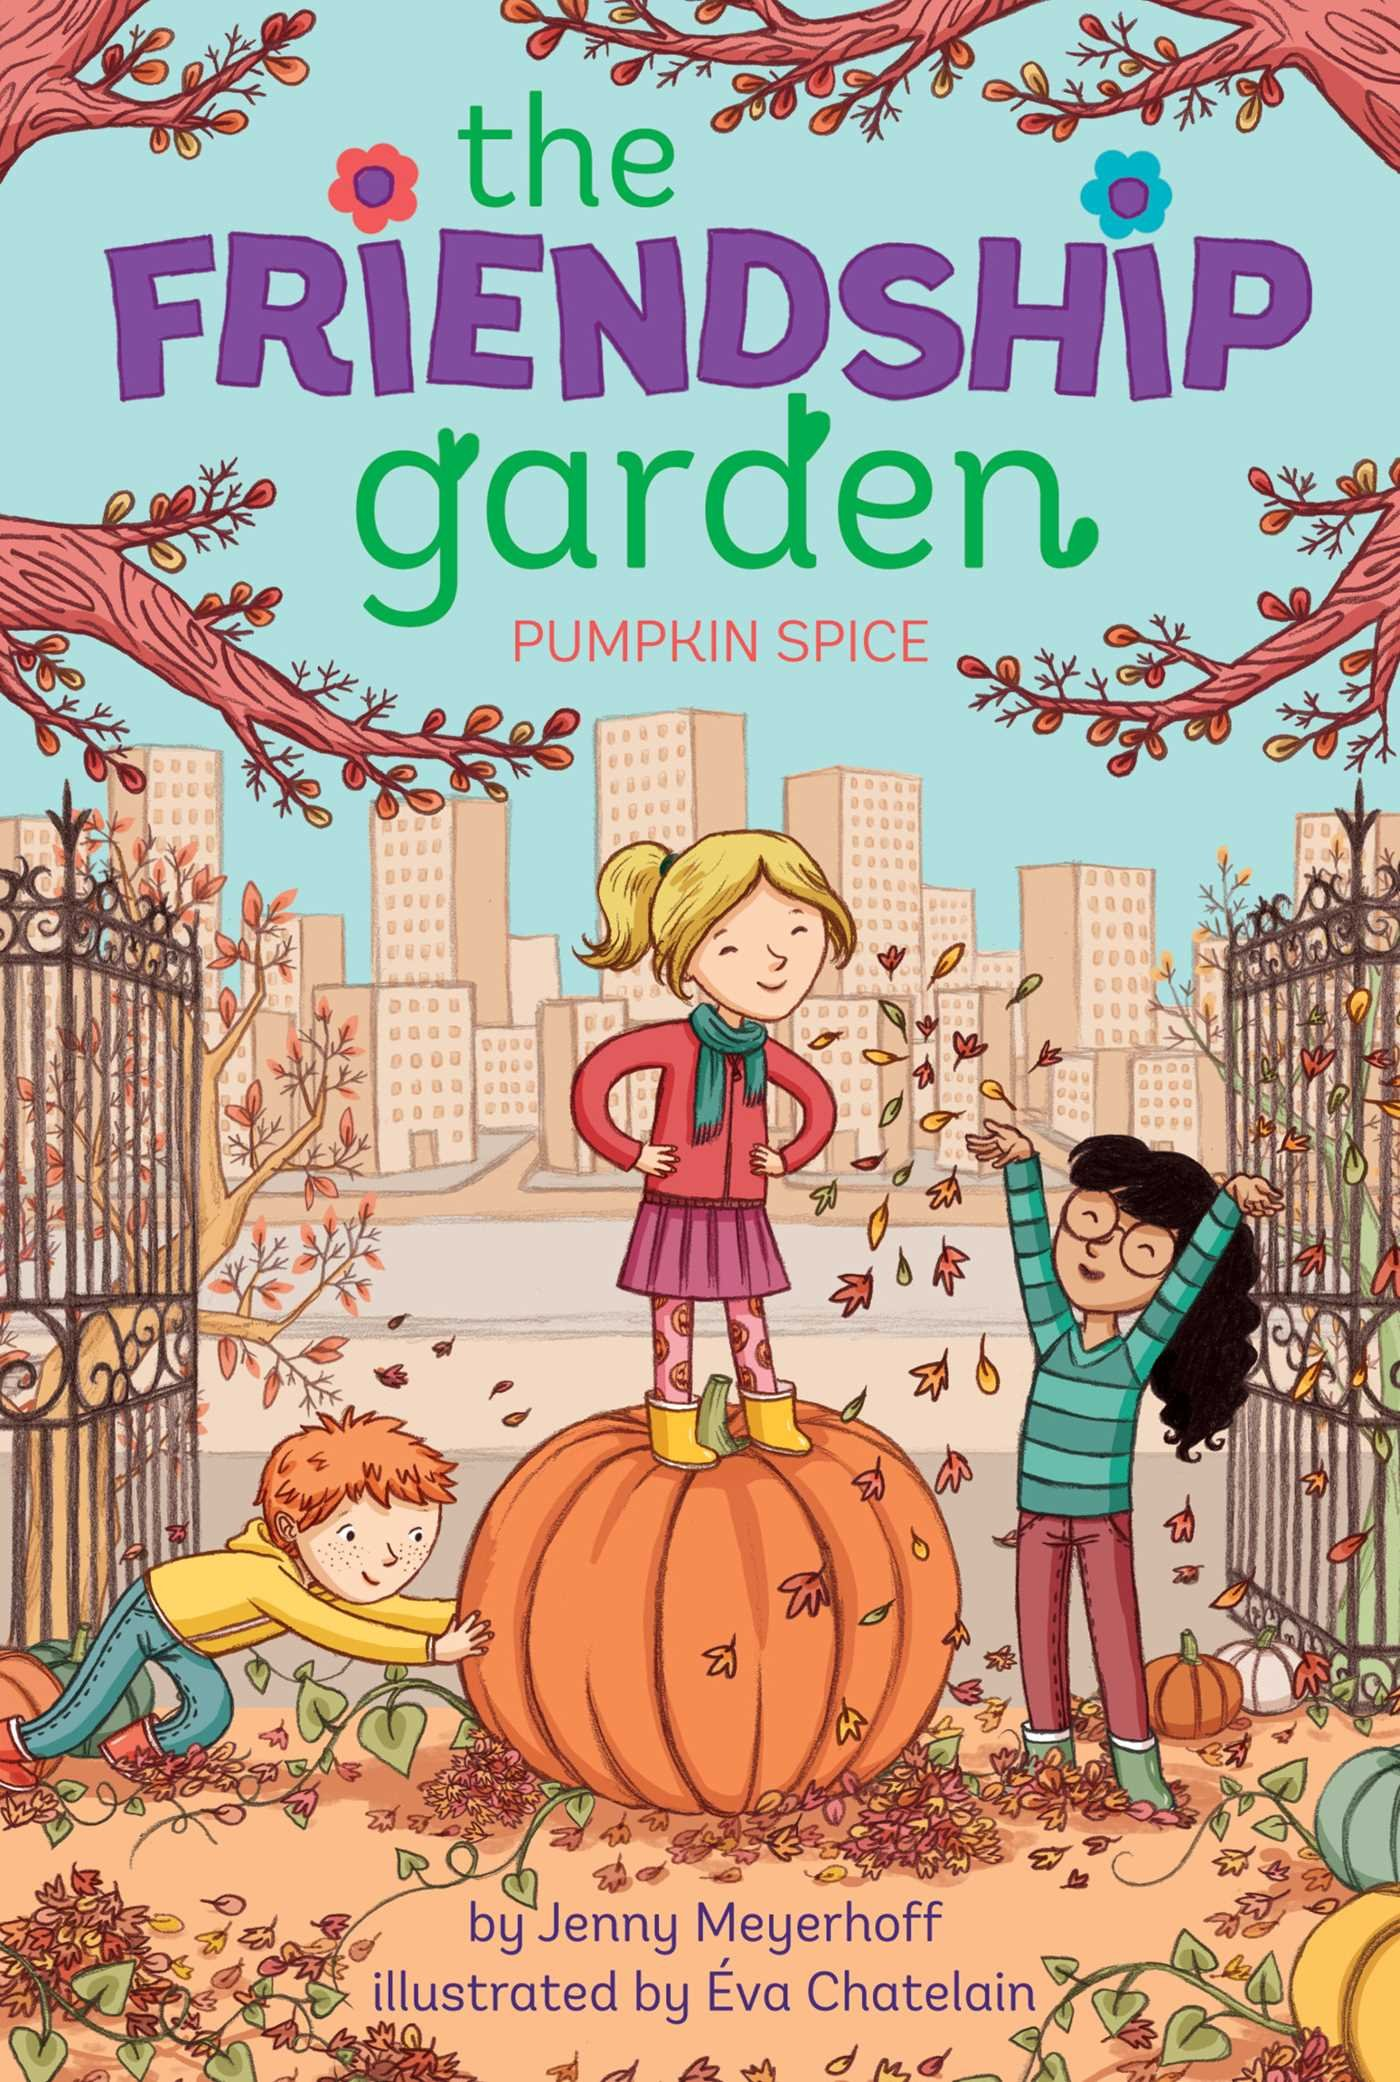 Pumpkin Spice (The Friendship Garden): Jenny Meyerhoff, Éva Chatelain:  9781481439091: Amazon.com: Books